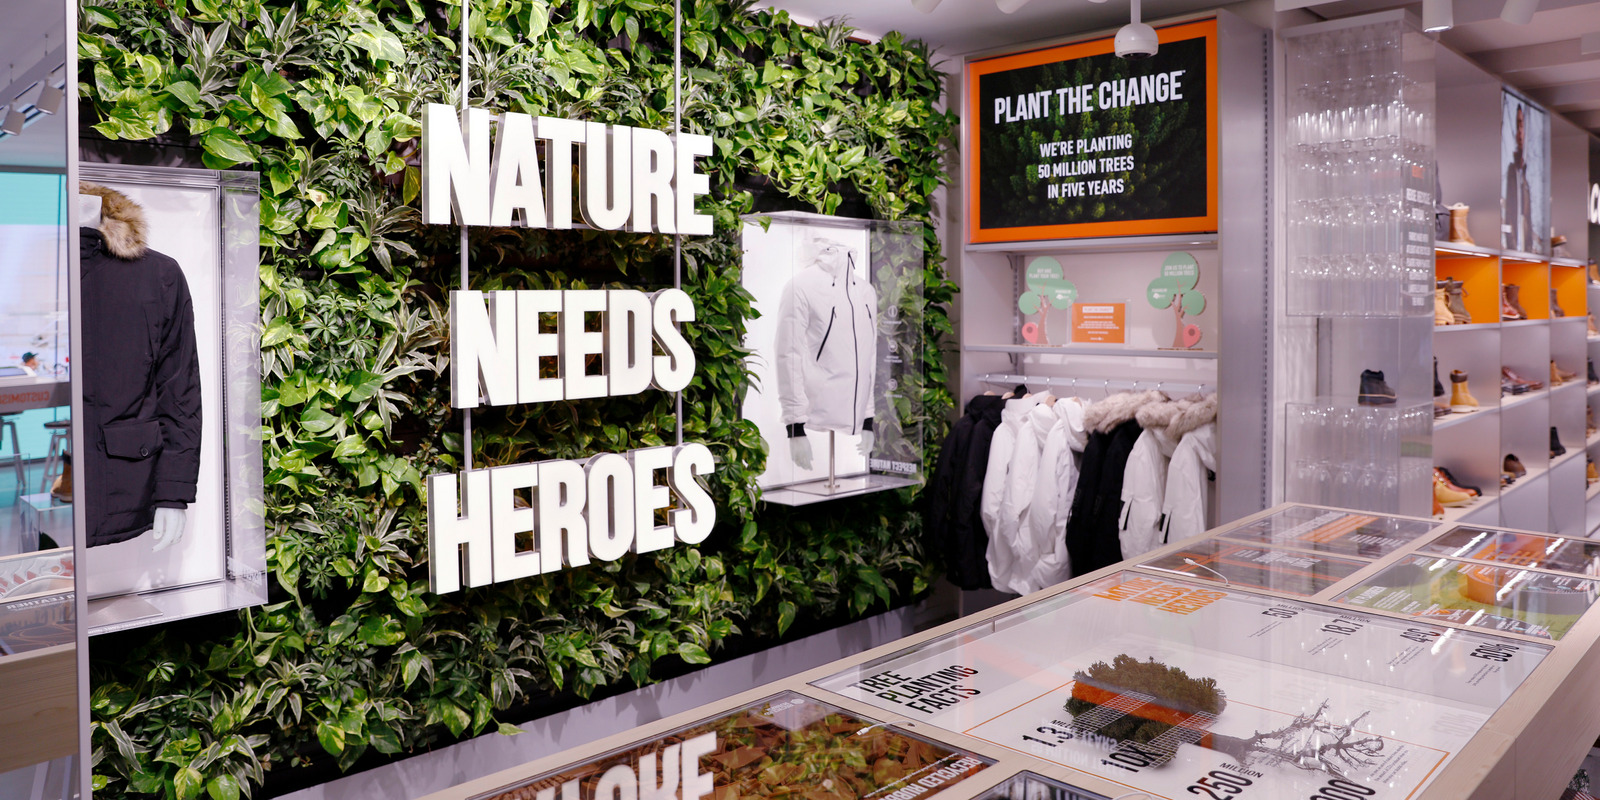 Constituir acumular ignorar  Timberland earns accolades for new purpose-led store environment - ACROSS |  The European Placemaking Magazine